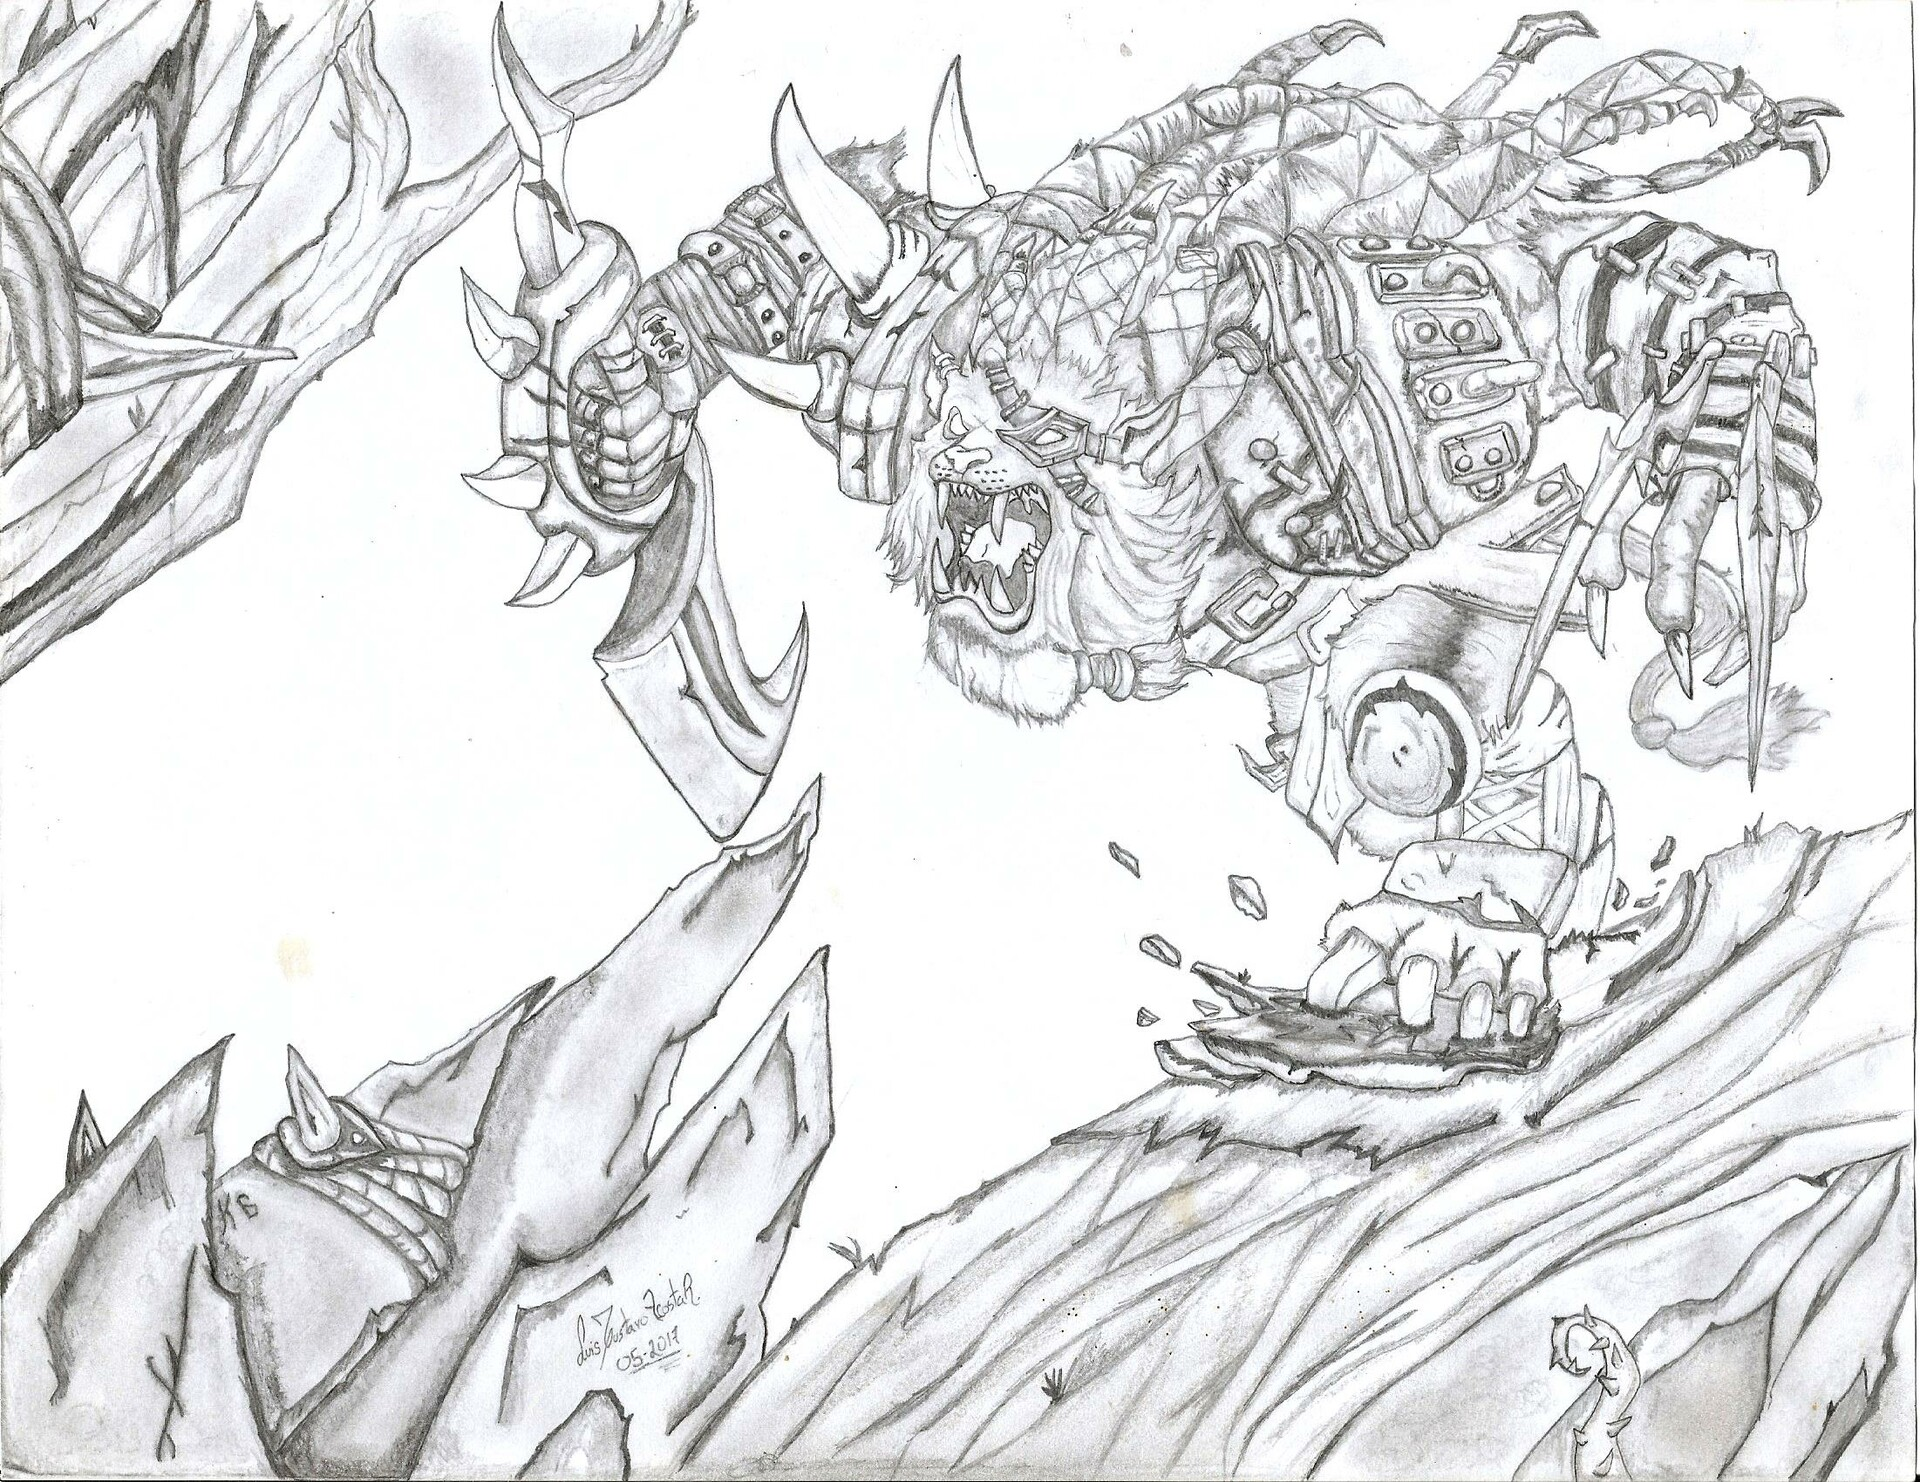 Artstation Rengar From League Of Legends Pencil Drawing Luis Gustavo 1024 x 1448 png 974 кб. rengar from league of legends pencil